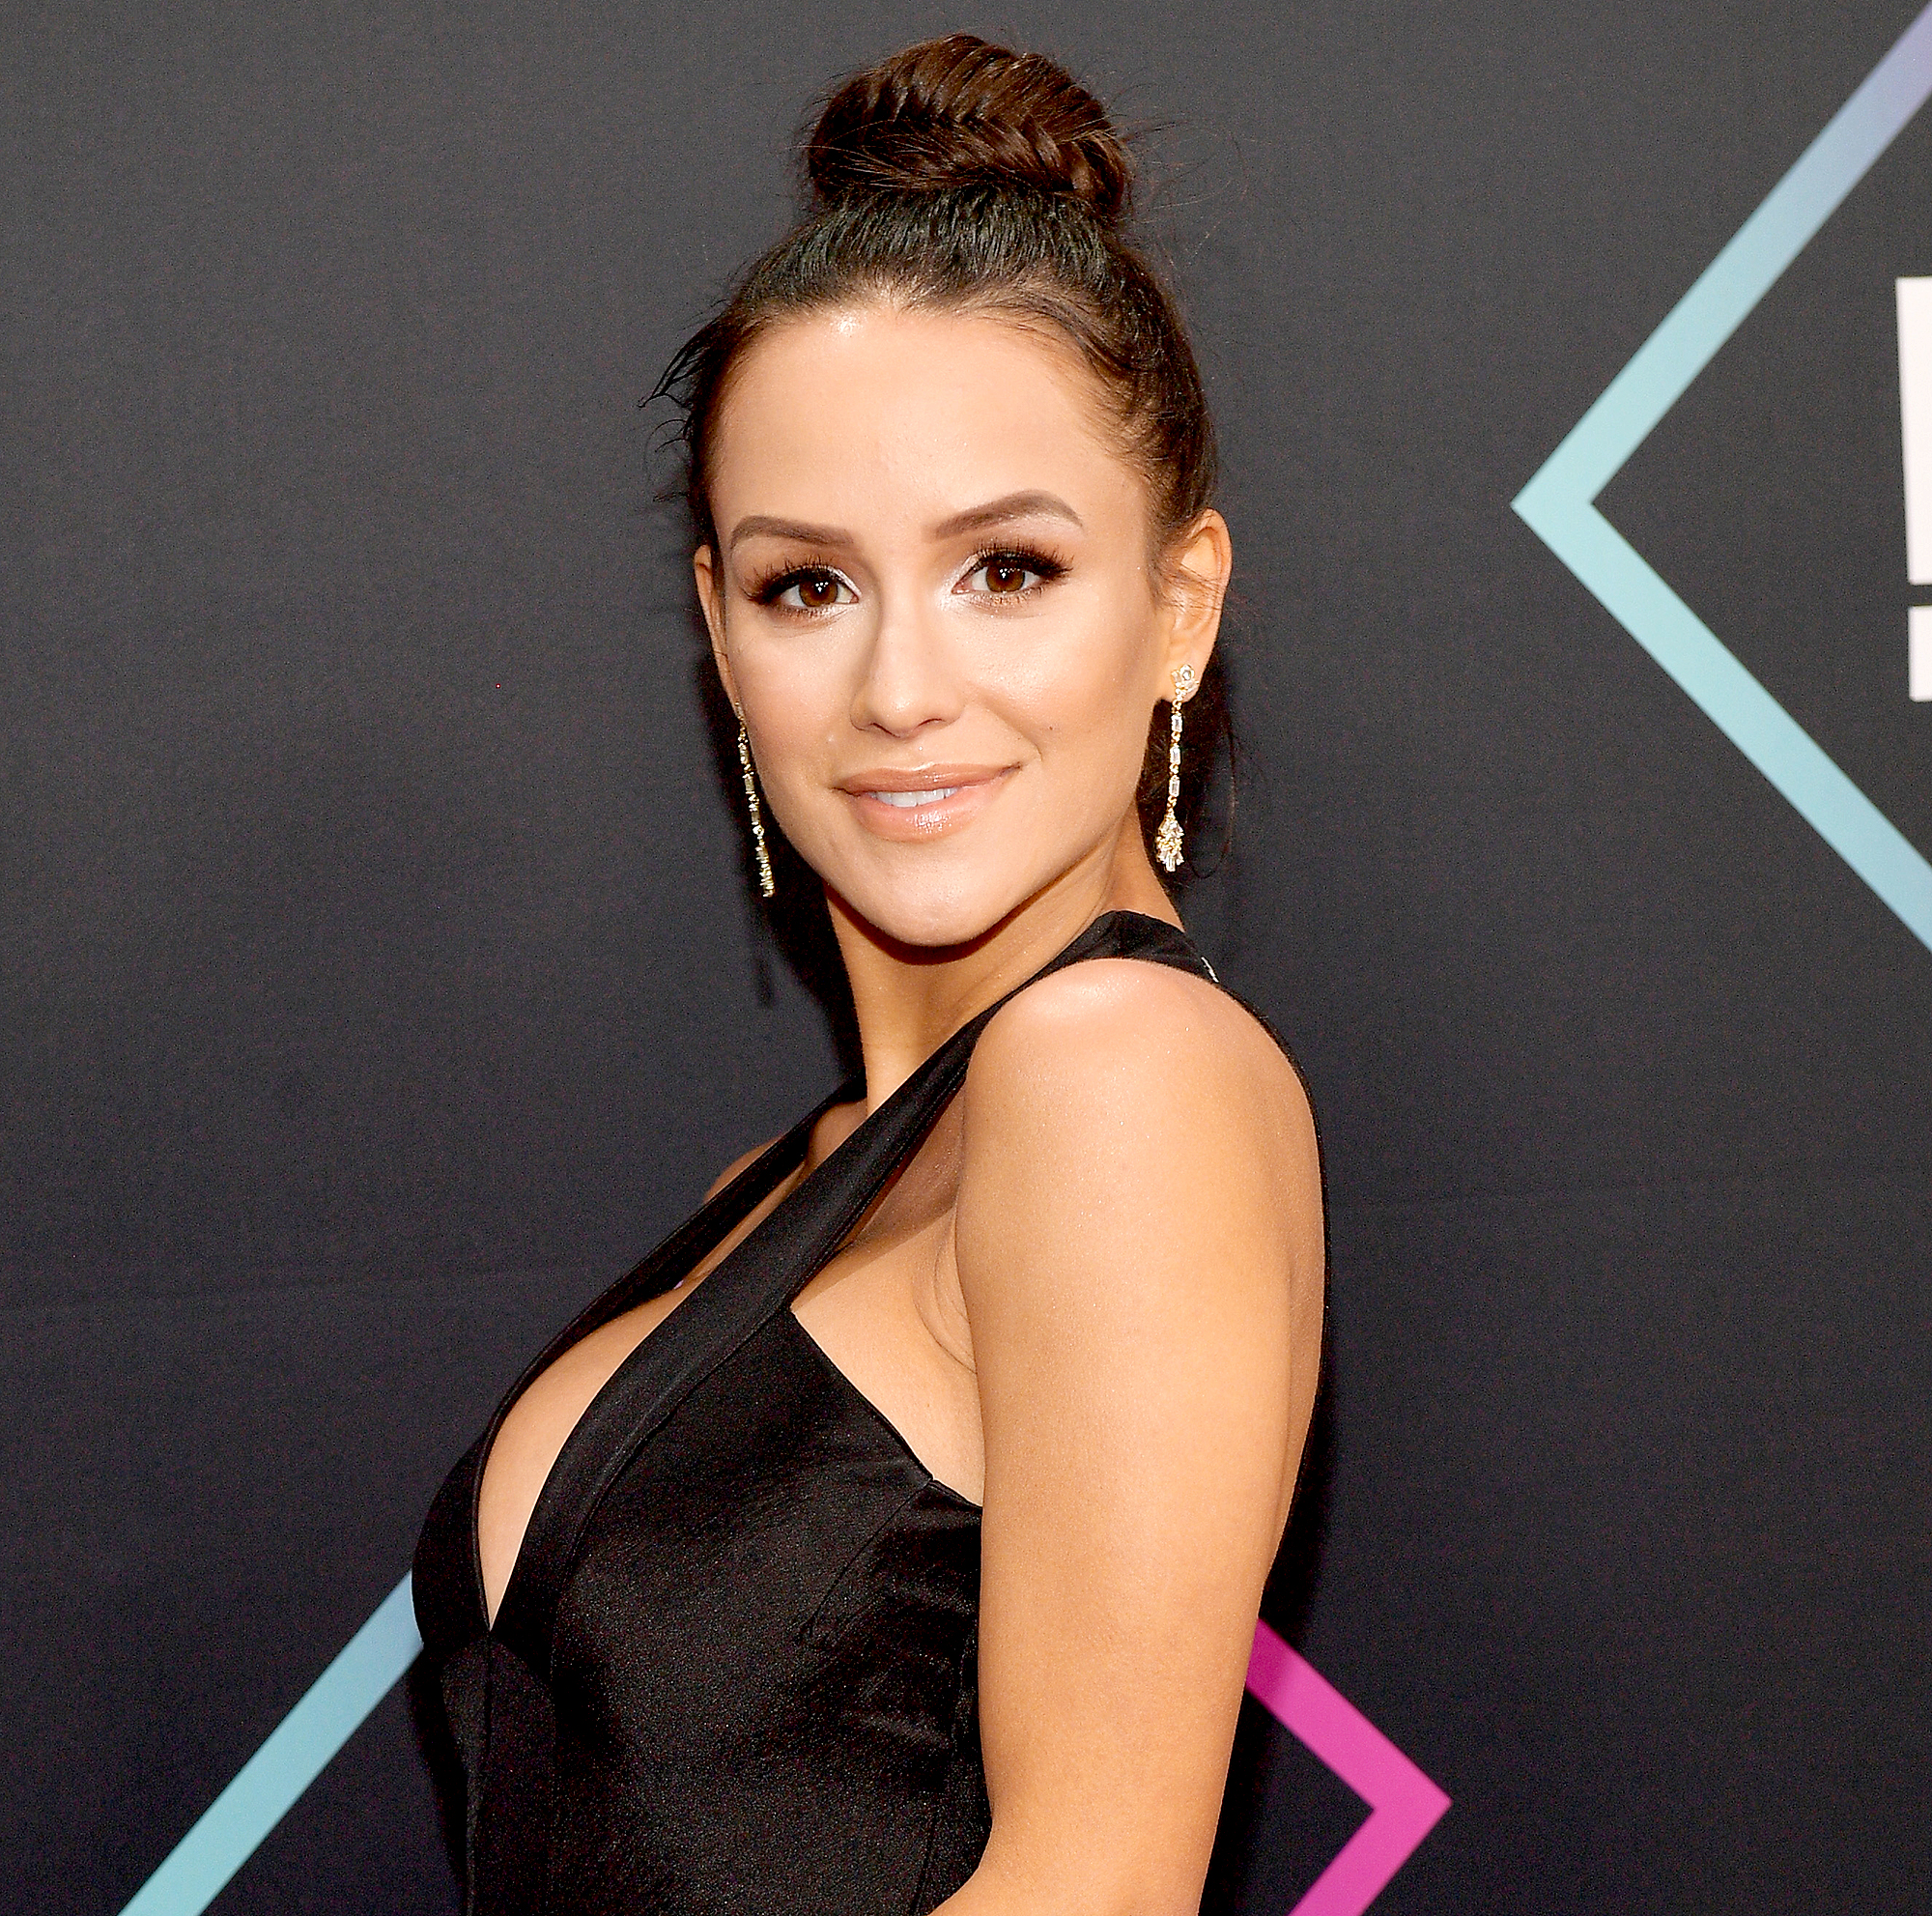 Jessica-Graf-Shows-Off-Her-Post-Baby-Body-1-Week-After-Giving-Birth-1 - Jessica Graf attends the People's Choice Awards 2018 at Barker Hangar on November 11, 2018 in Santa Monica, California.